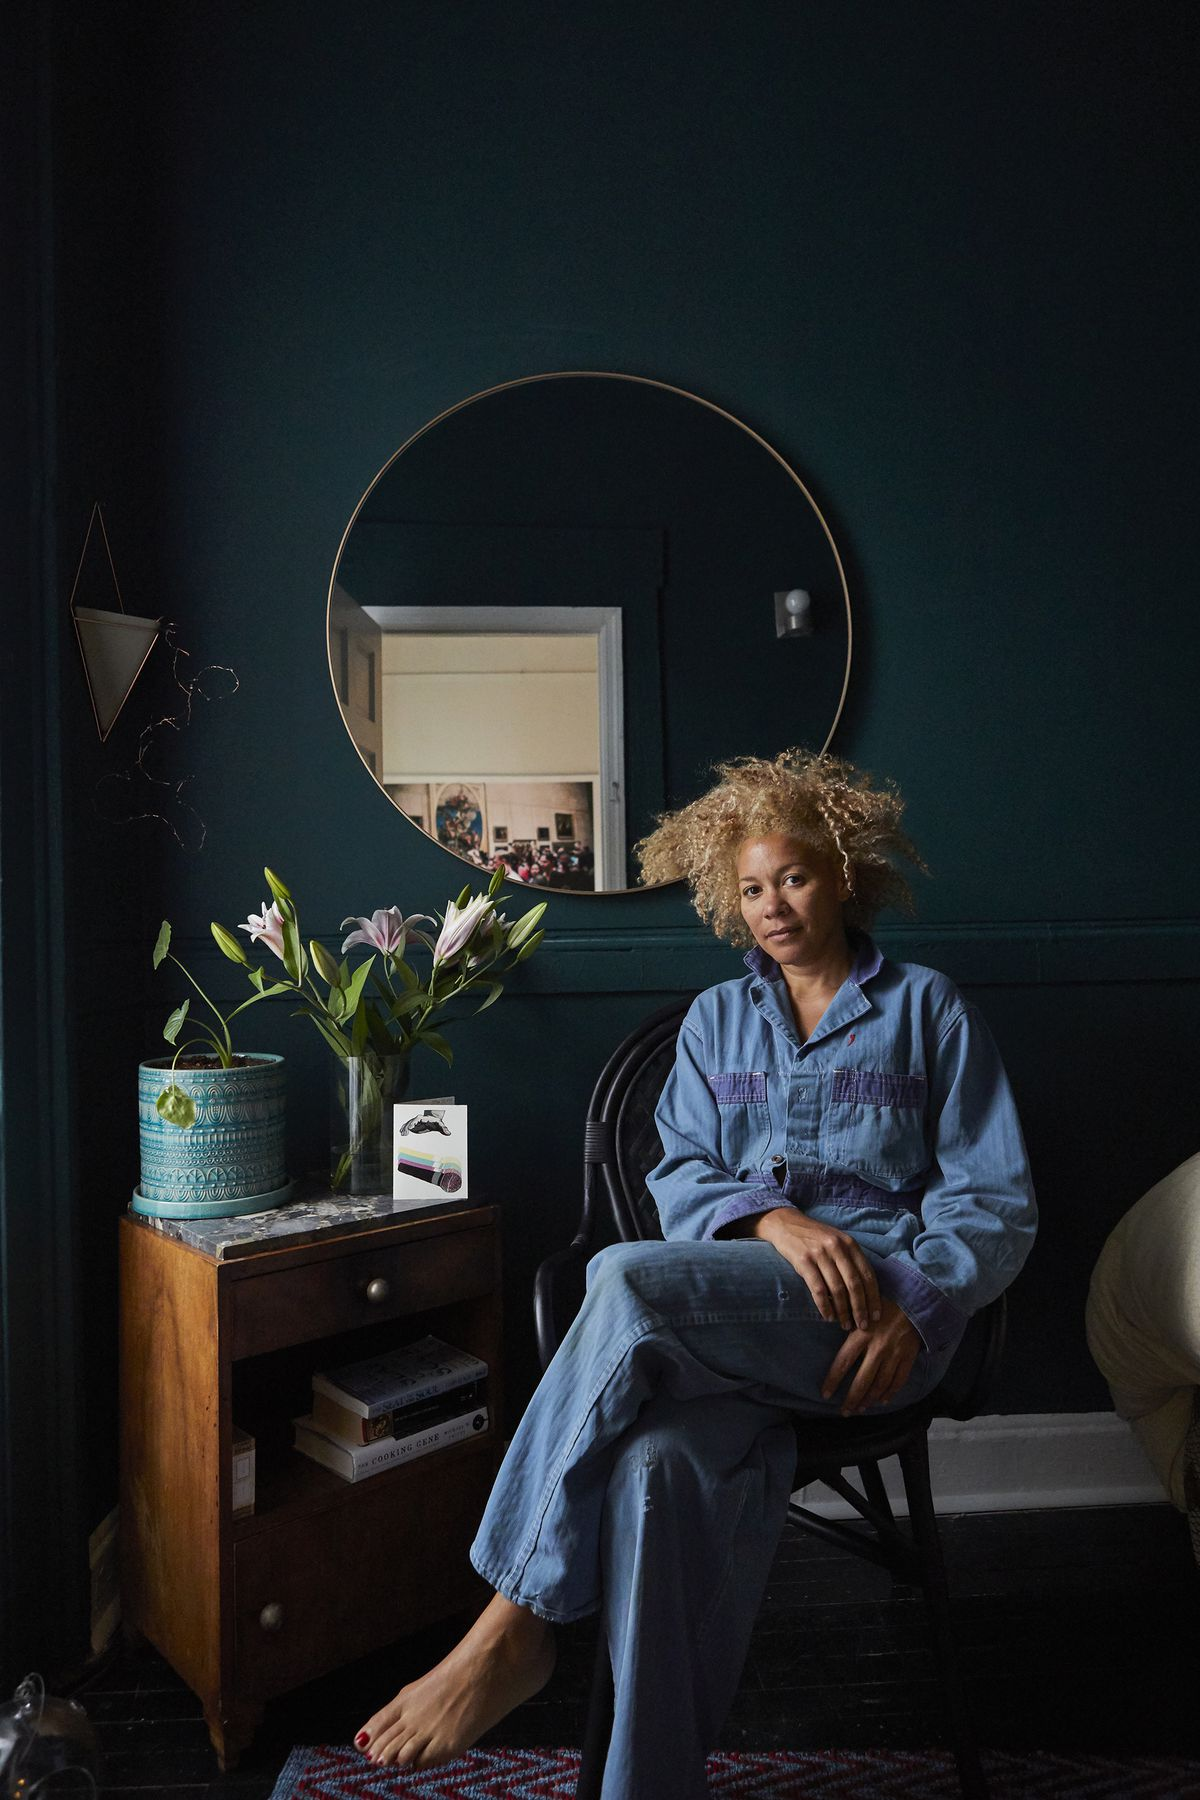 The photographer poses in room with deep blue-green walls. There is a mirror on the wall and a table with a vase of flowers on it.